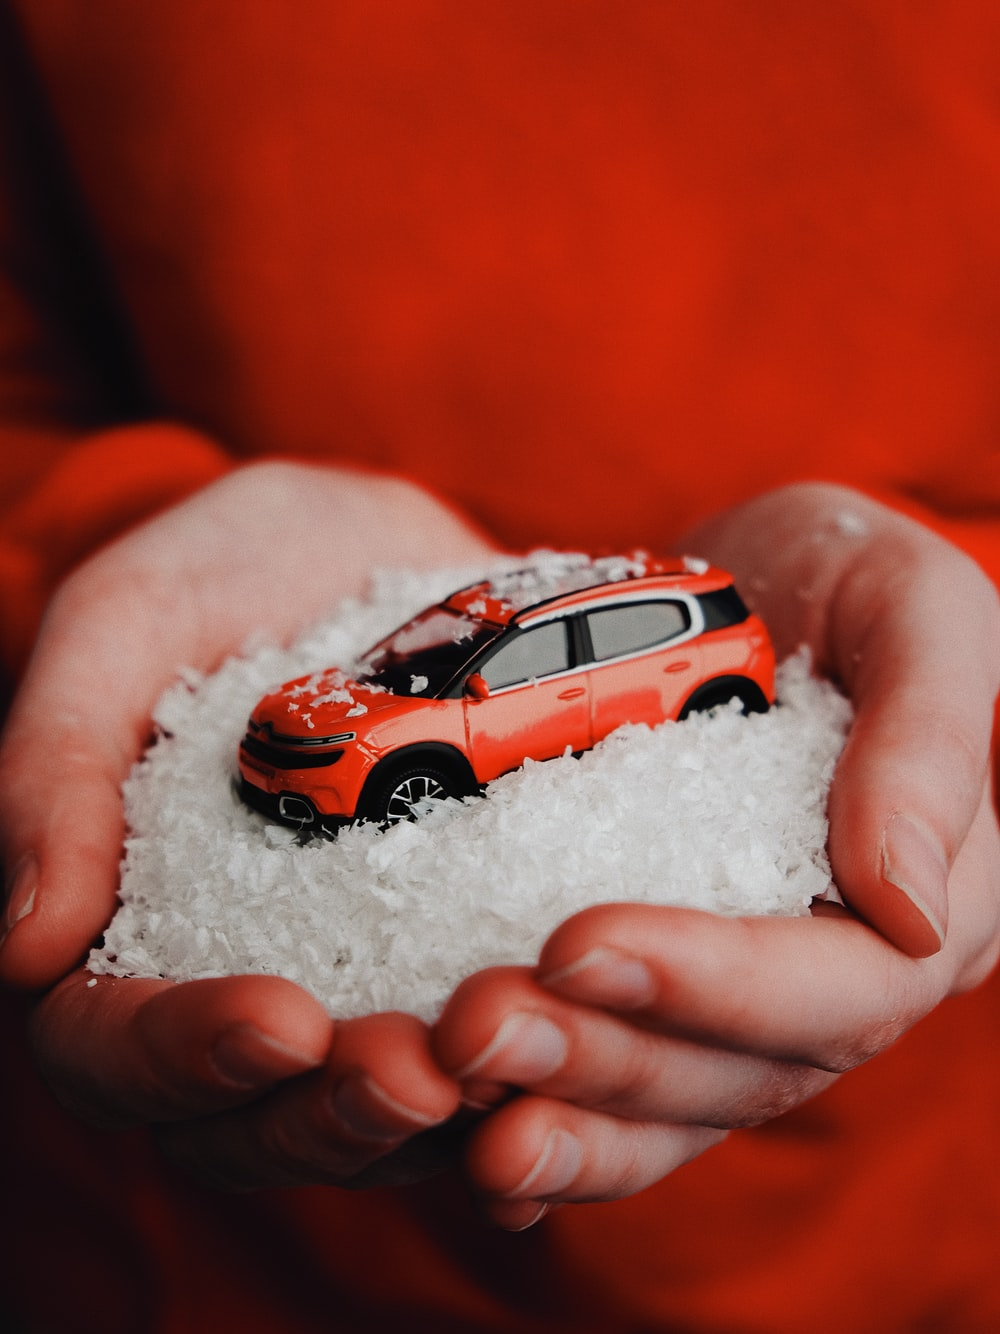 person holding red vehicle die-cast model